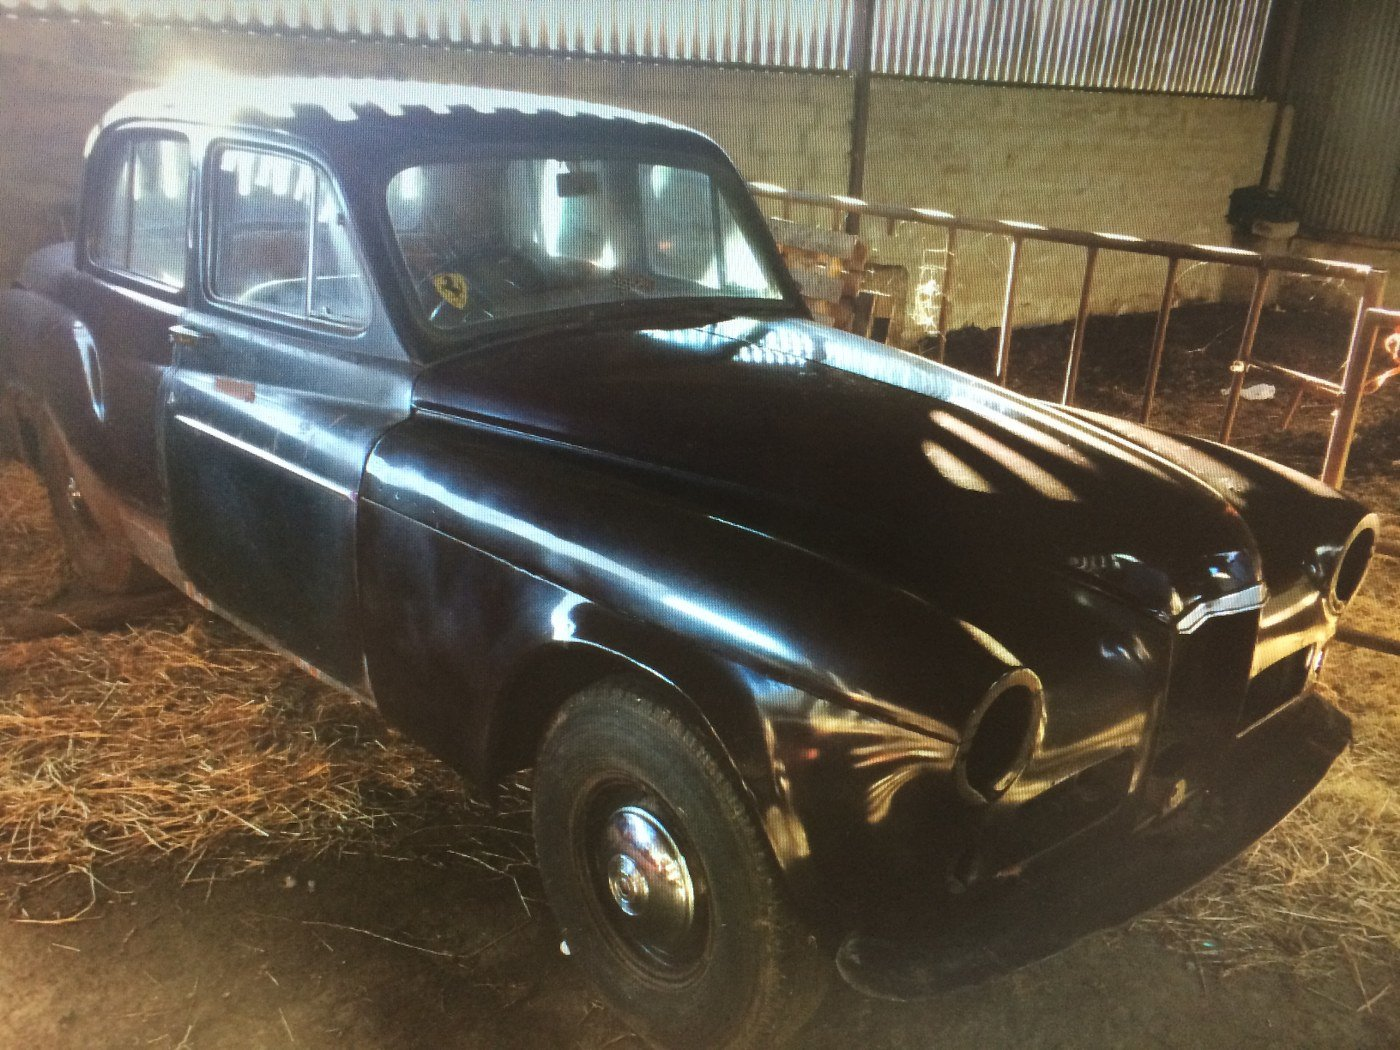 1953 Humber Super Snipe Mk4 Early Car For Sale (picture 1 of 3)